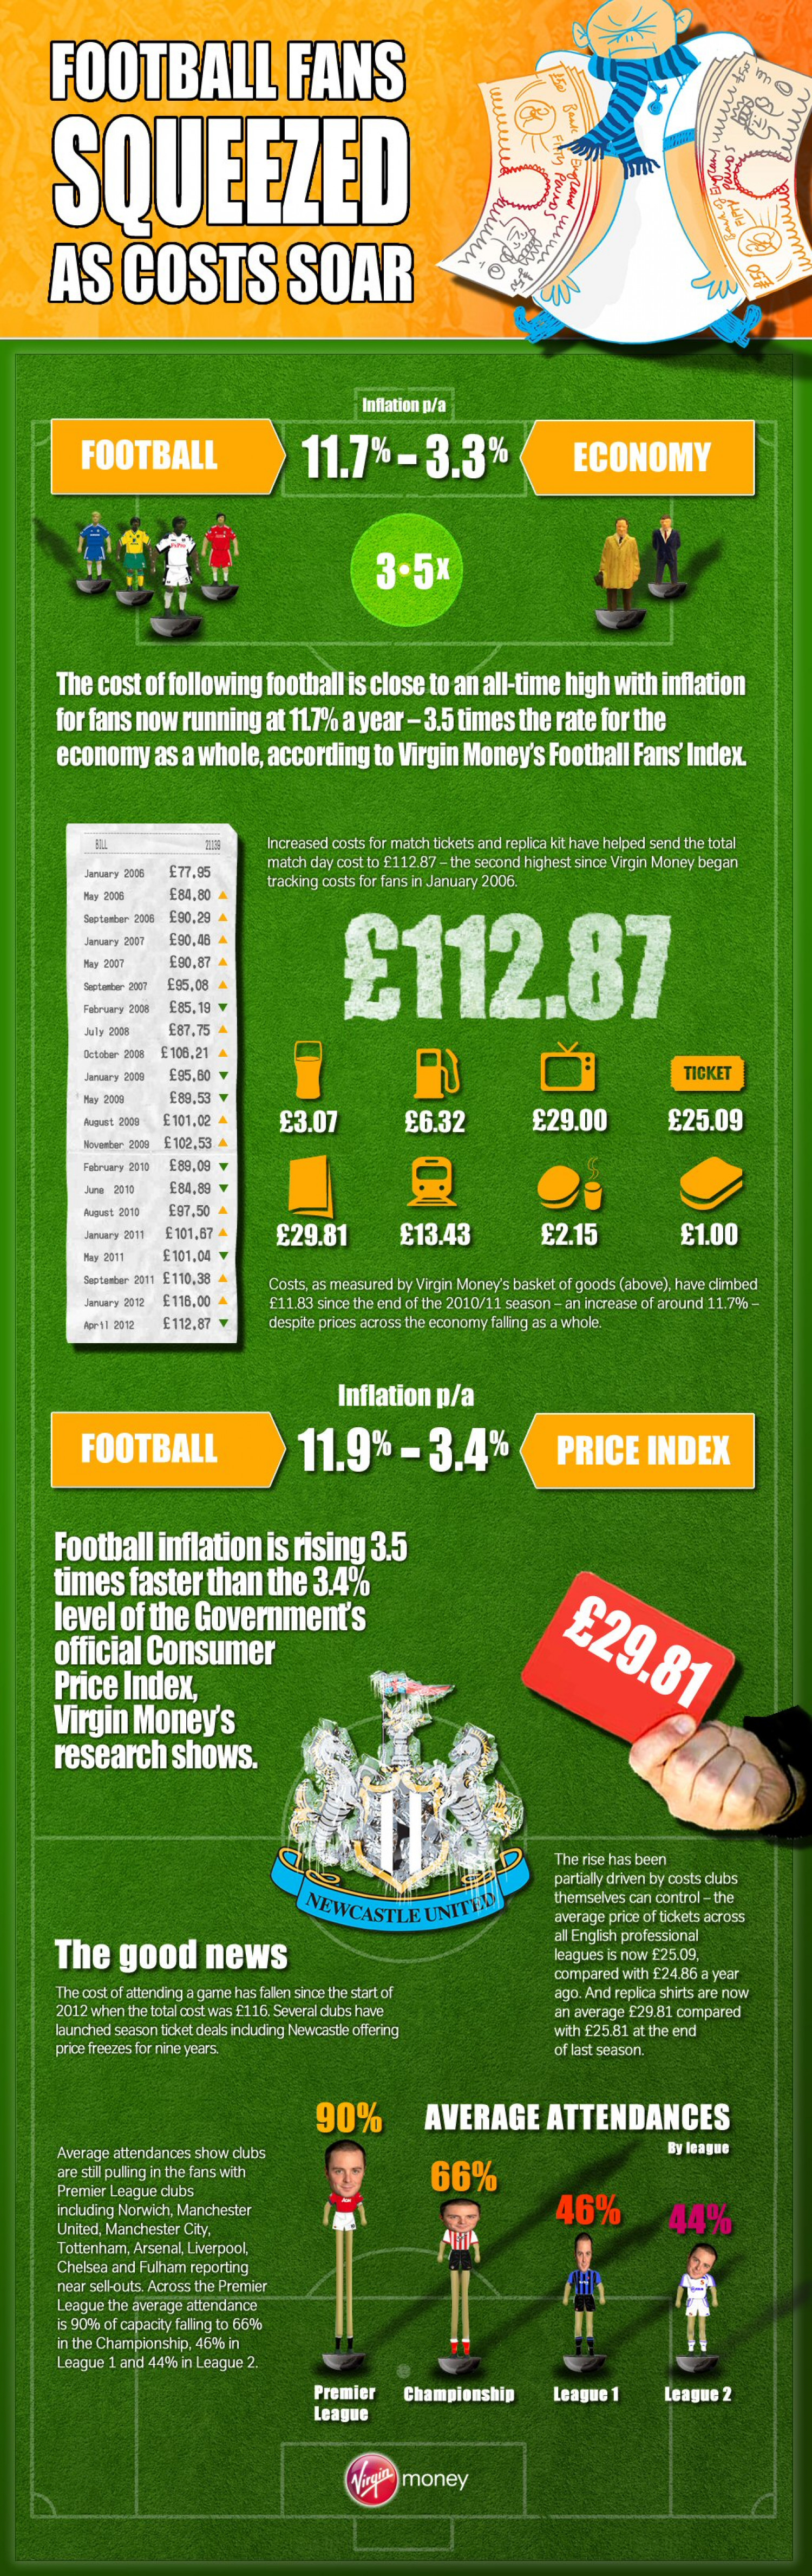 Virgin Money: Football Fans Squeezed as Costs Soar Infographic